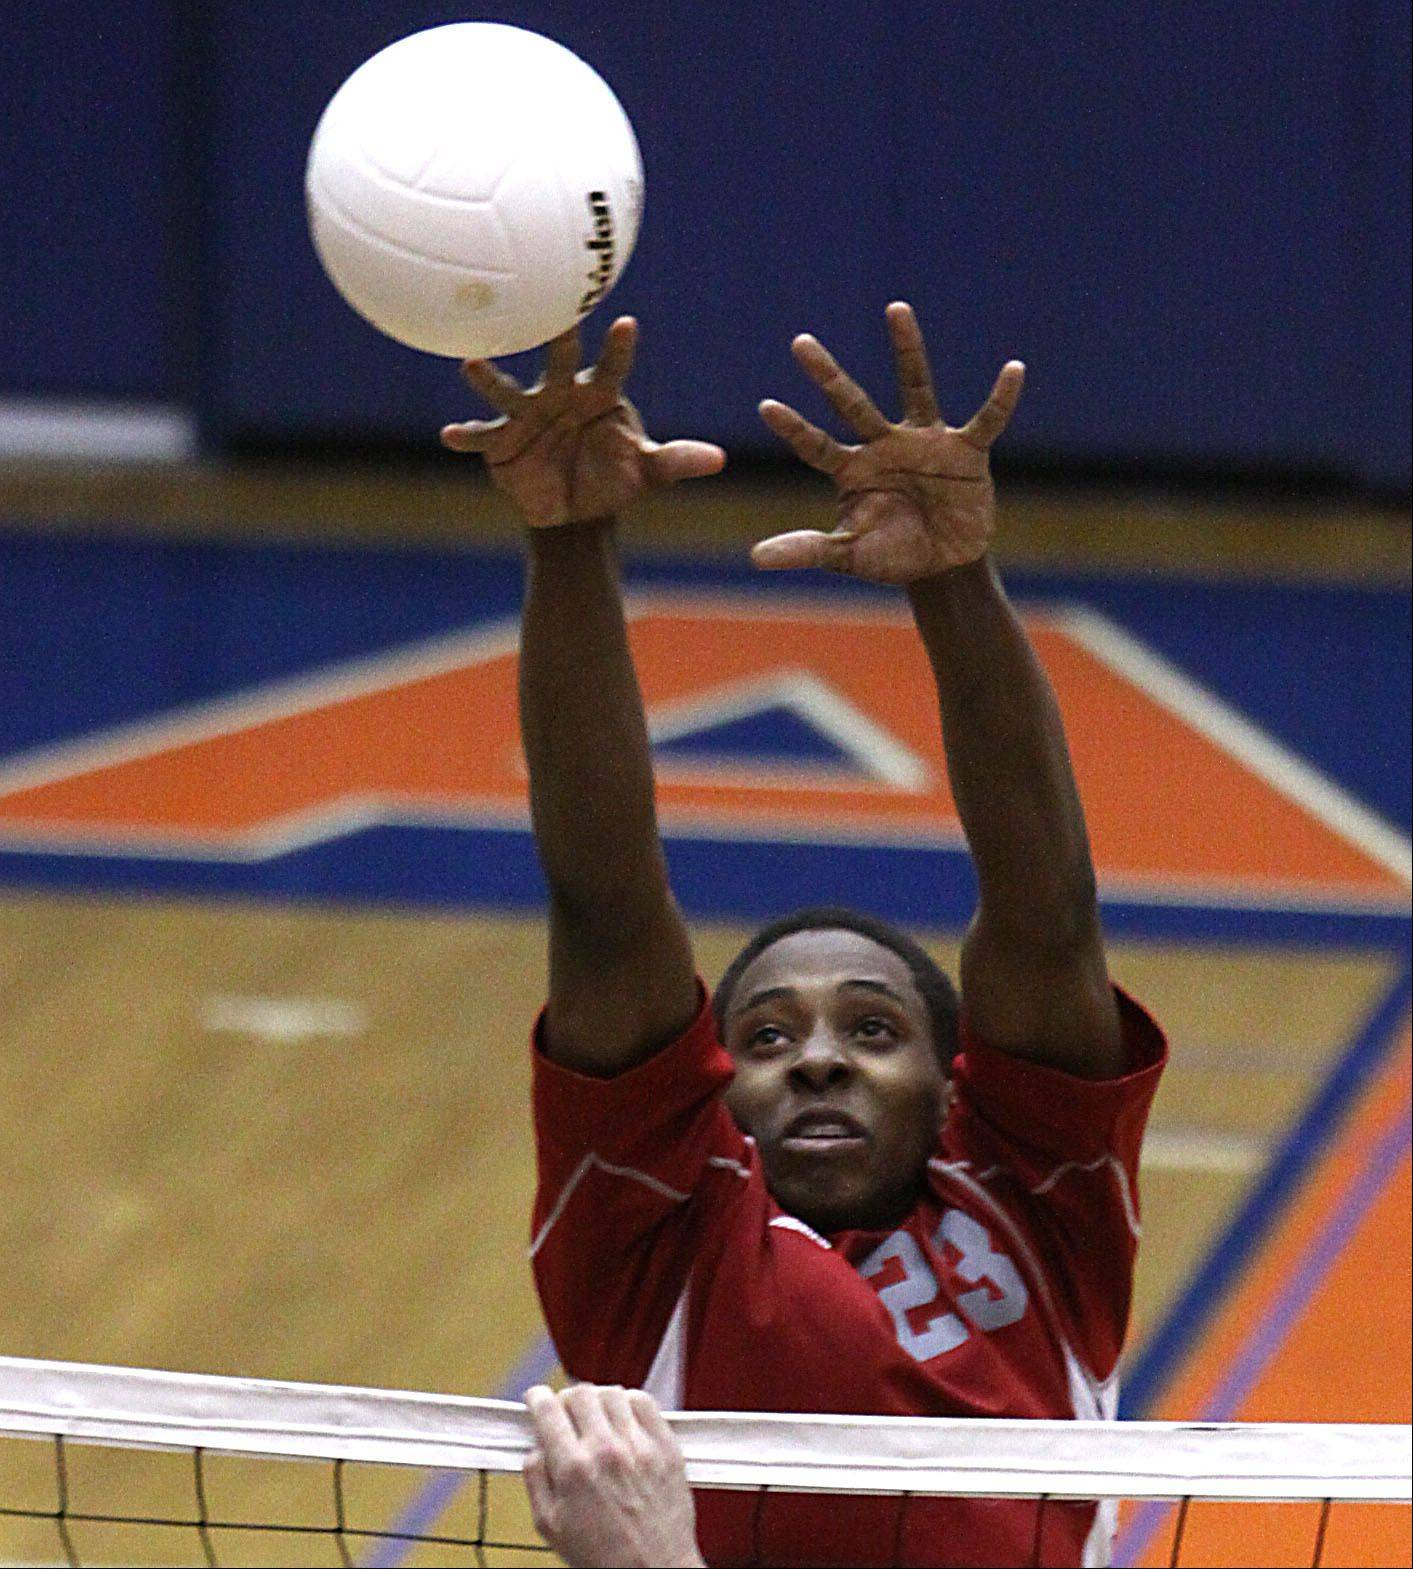 Palatine's Kareem Anderson blocks at Hoffman Estates on Thursday night.